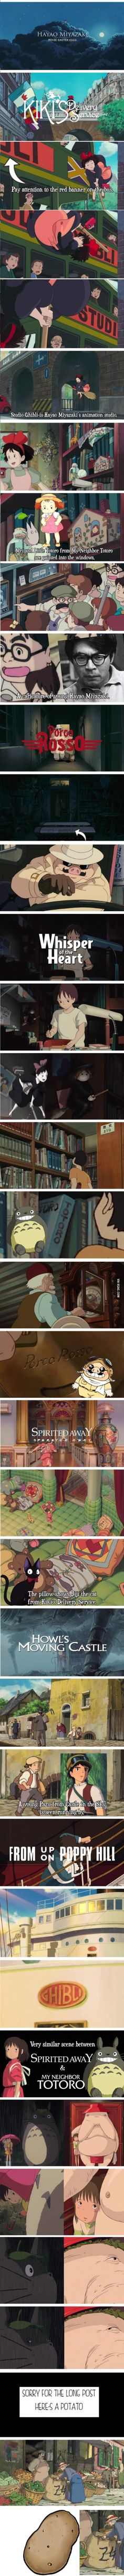 Hayao Miyazaki Movie Easter Eggs (Studio Ghibli) i have every single Miyazaki movie in my collection